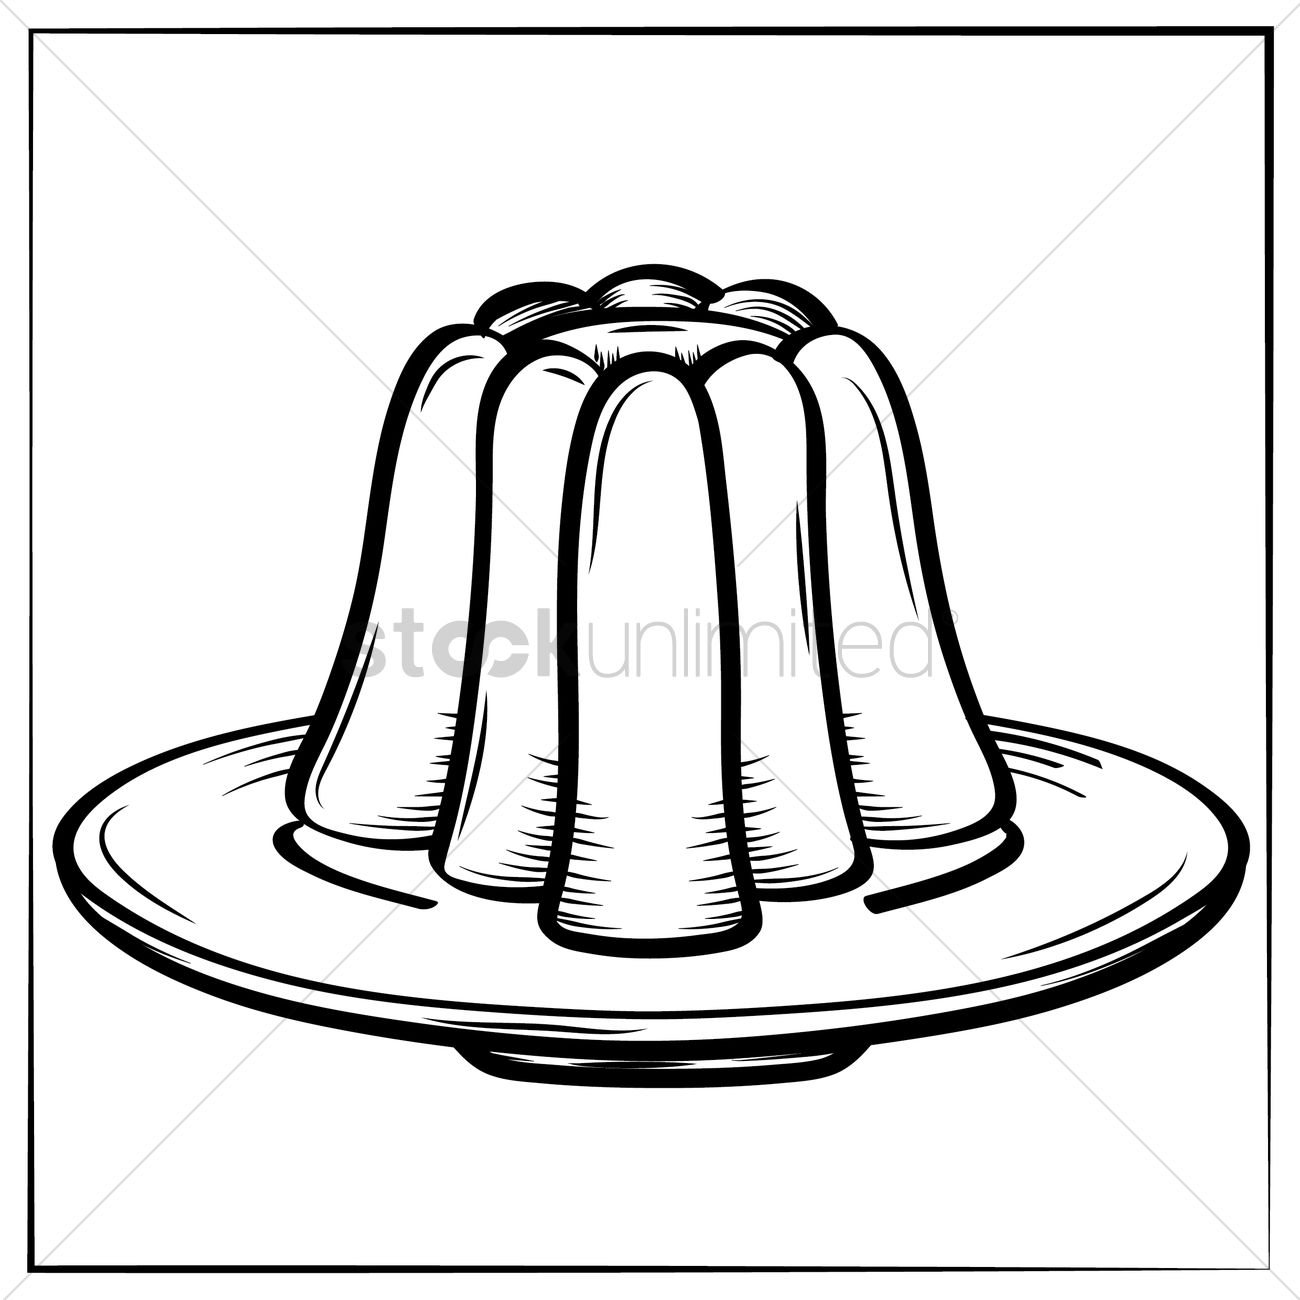 Jelly Vector Image - 1634616   StockUnlimited